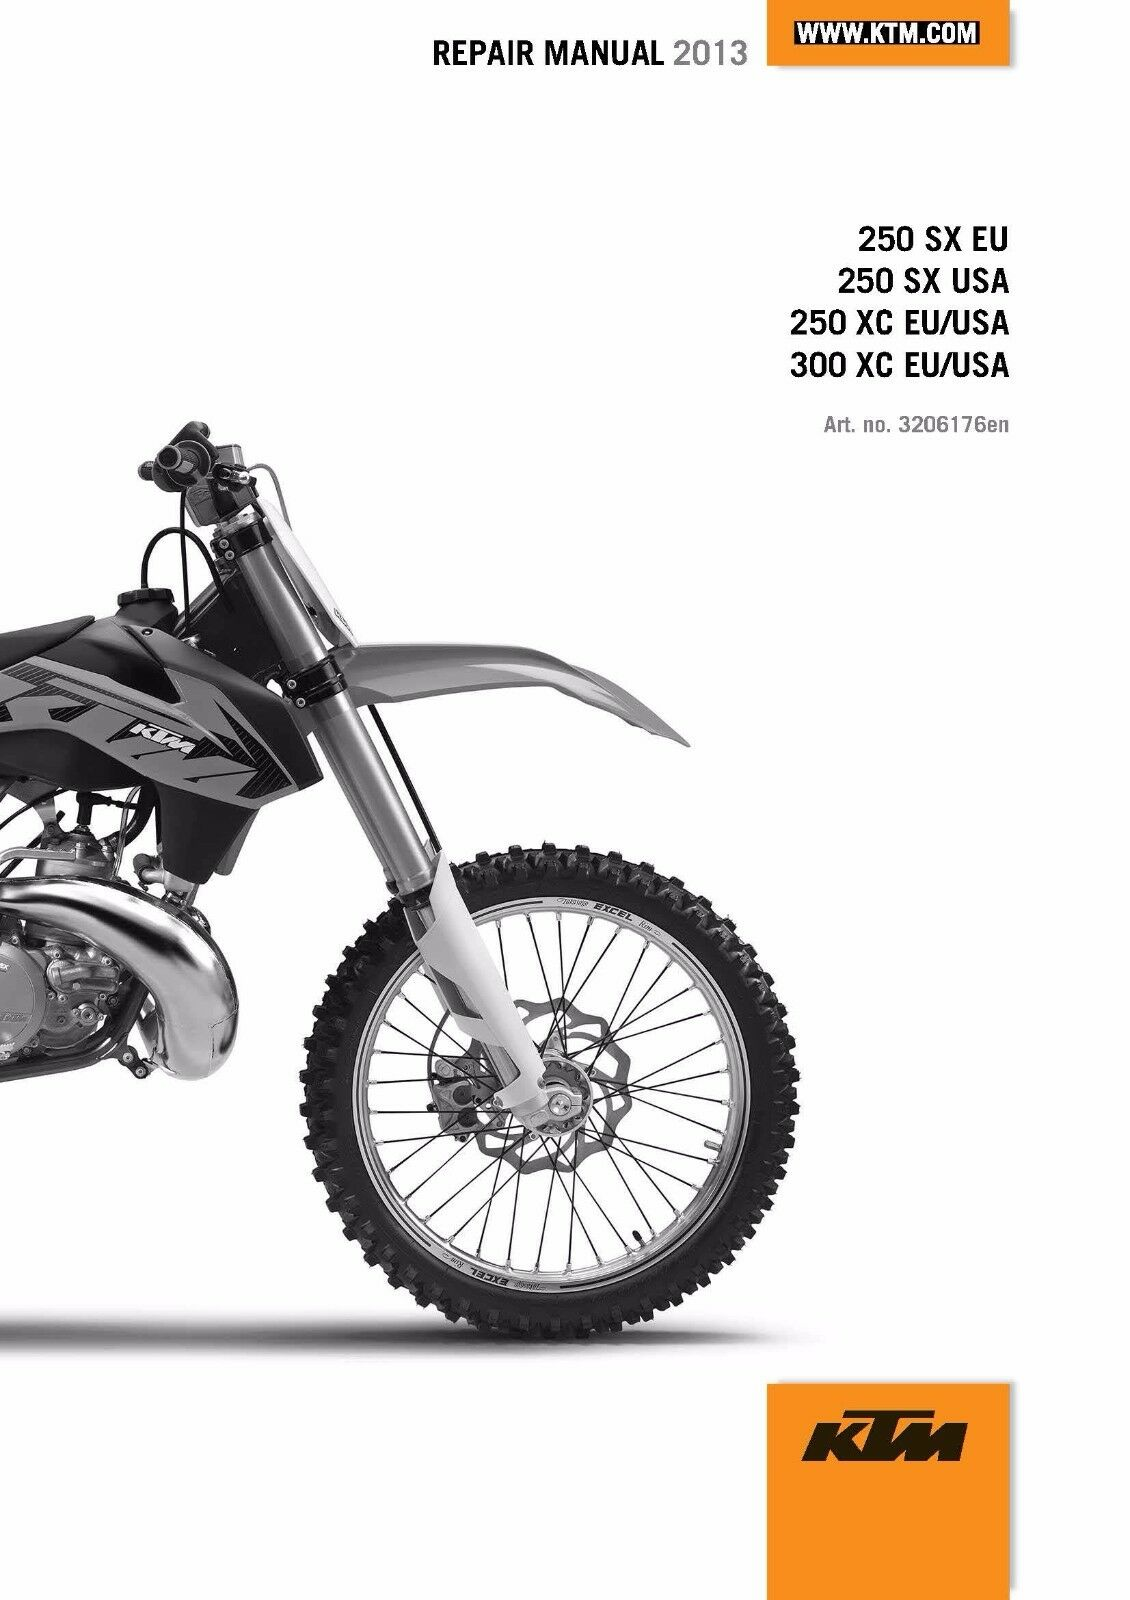 KTM Service Workshop Shop Repair Manual Book 2013 300 XC 1 of 12 See More